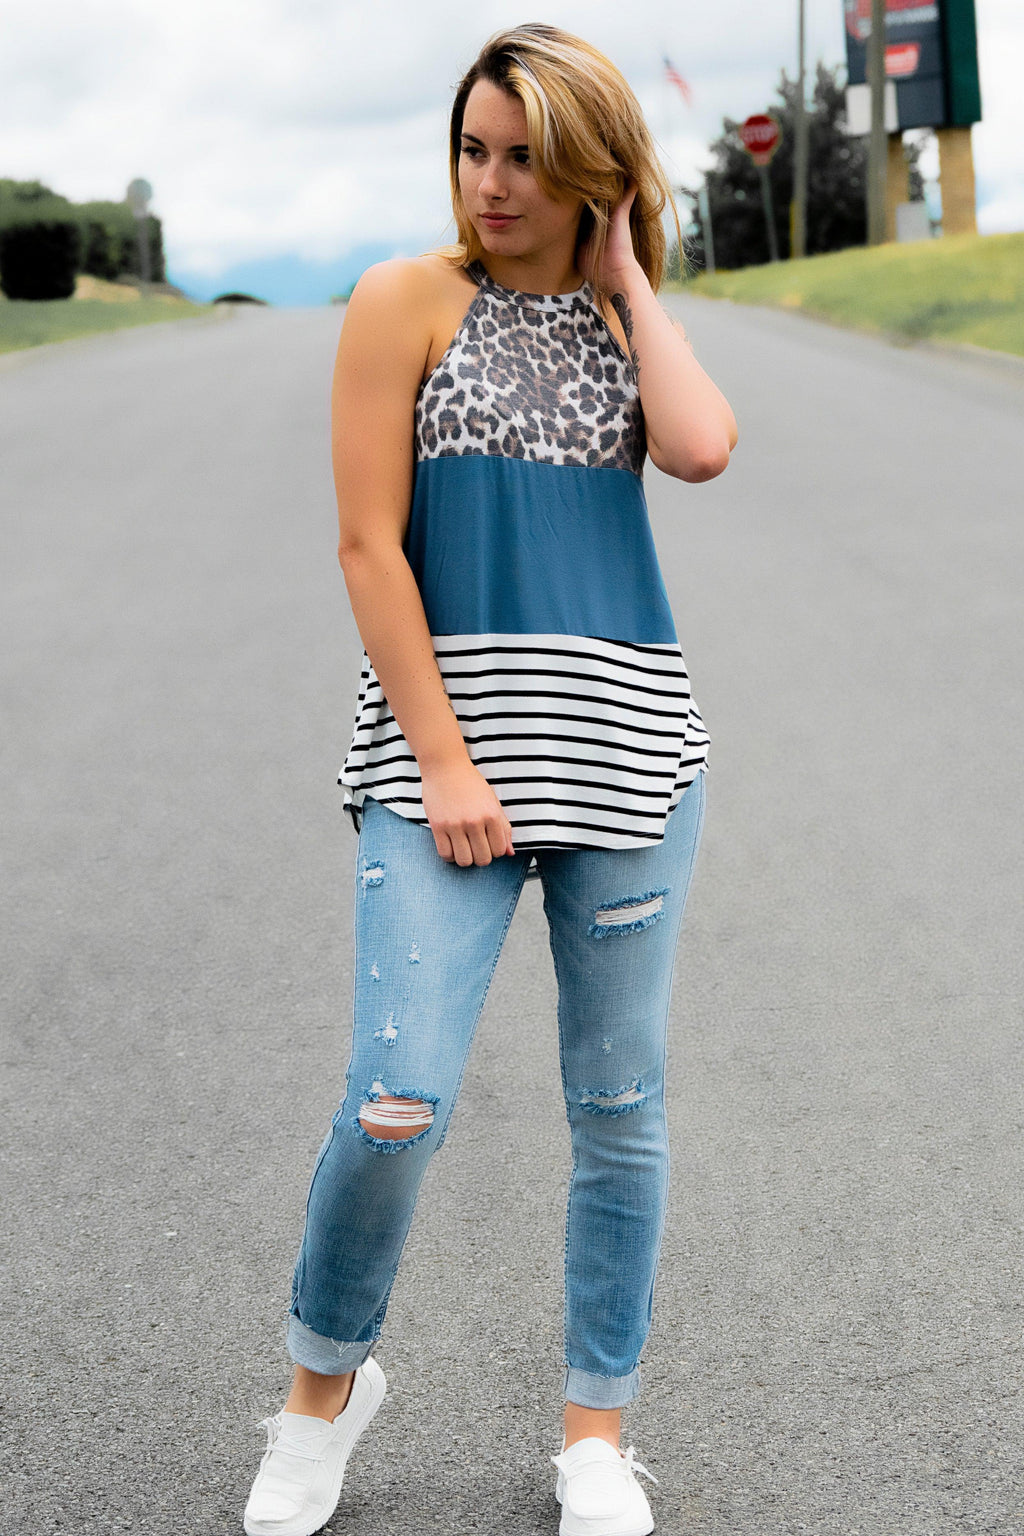 Teal + Animal Print Top - 512 Boutique